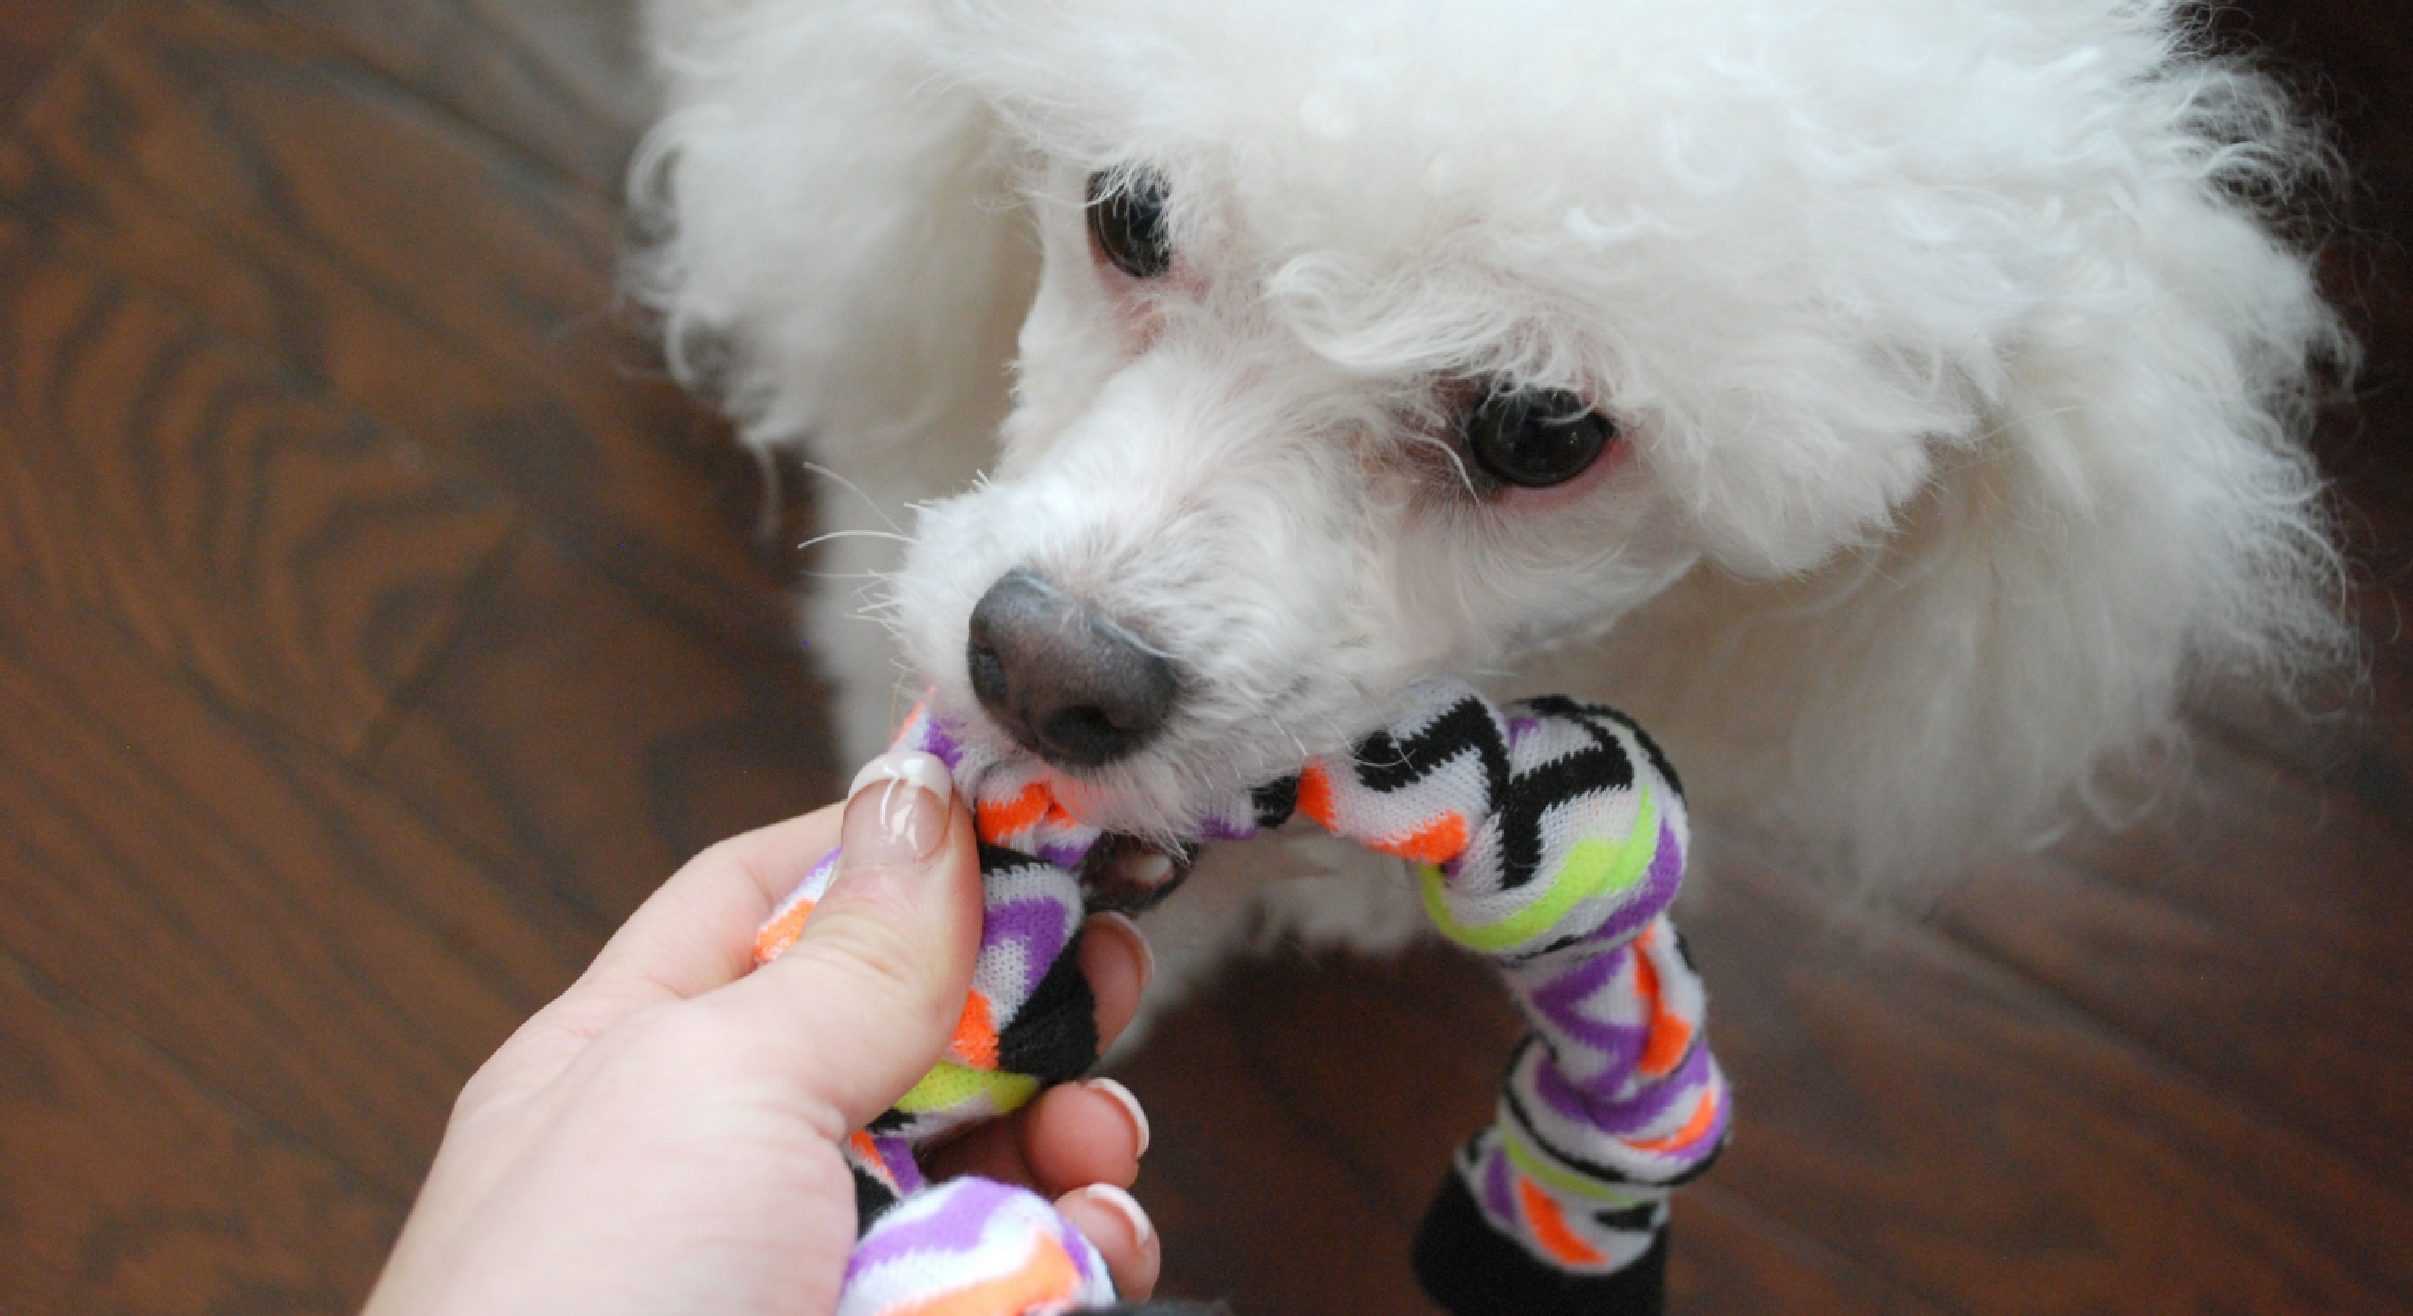 NoSew DIY Dog Toys 4 Ways To Turn Old Socks Into Puppy Play